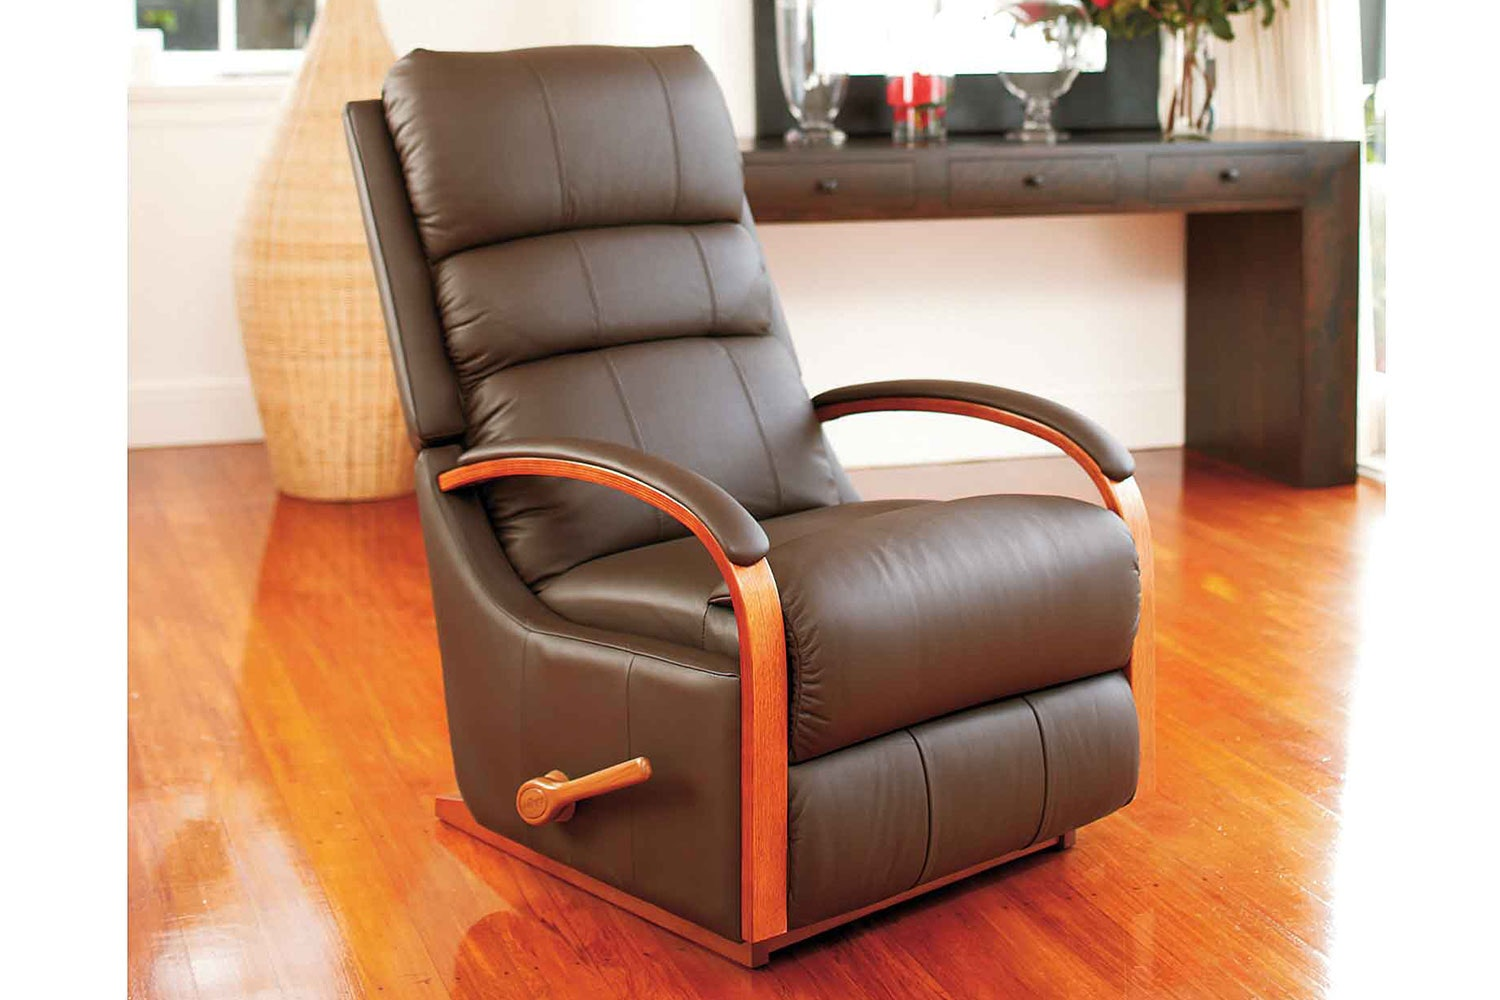 Charleston Leather La-Z-Boy Recliner Chair